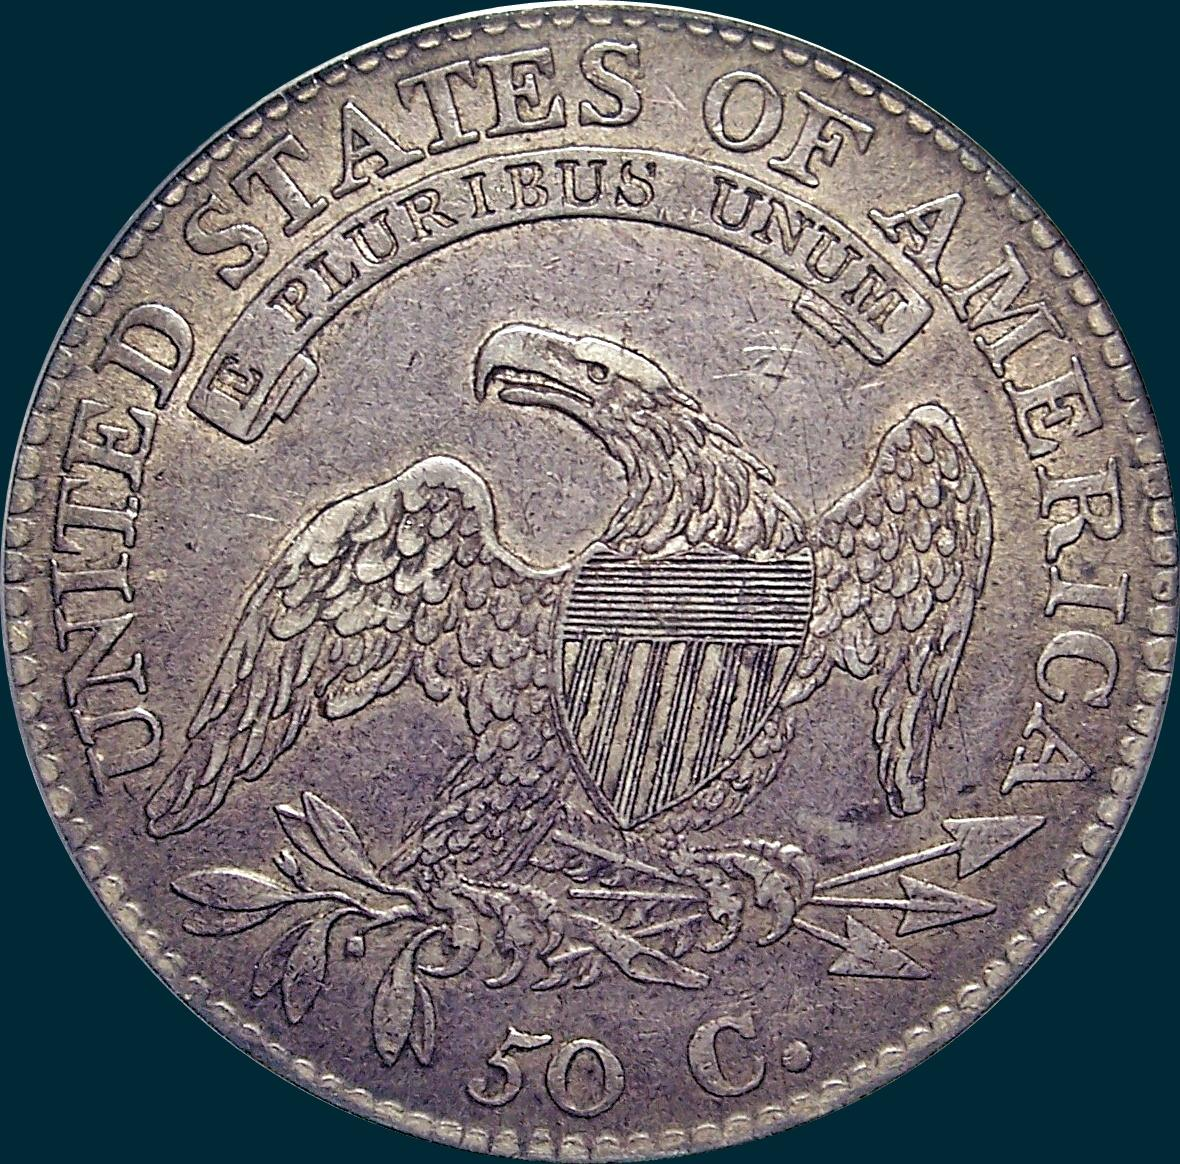 1813 O-102, Capped bust half dollar